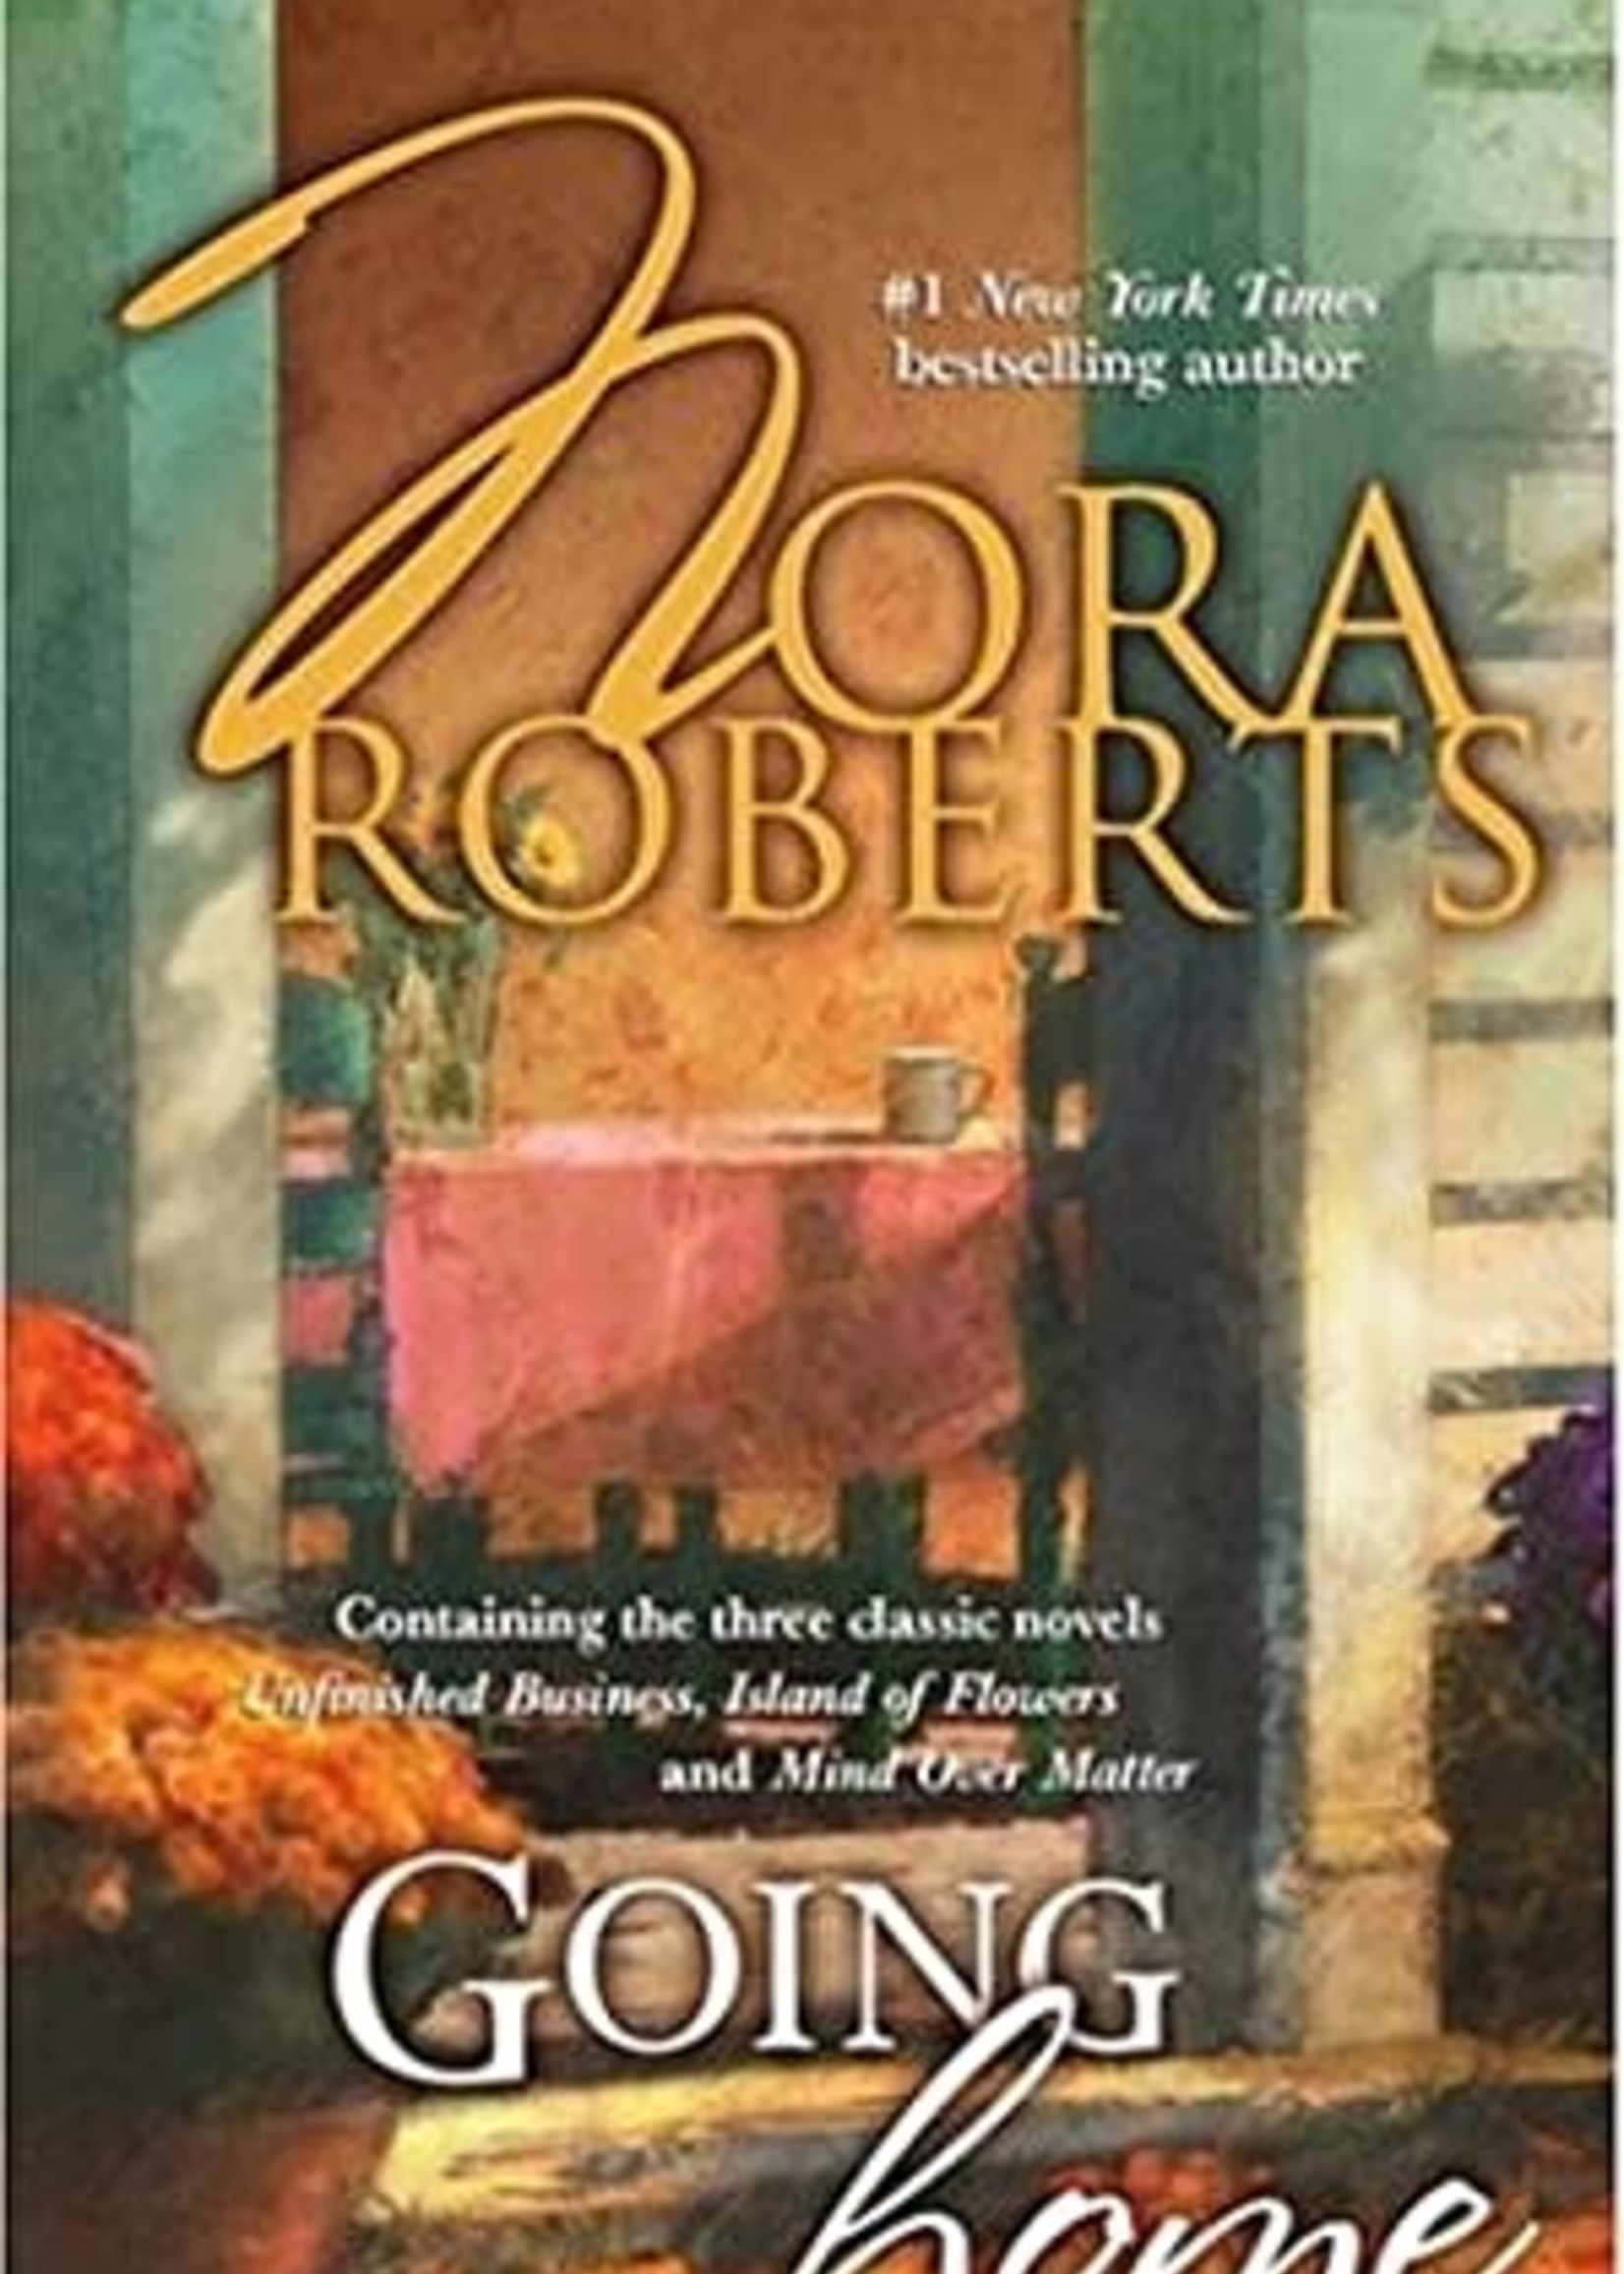 USED - Going Home by Nora Roberts